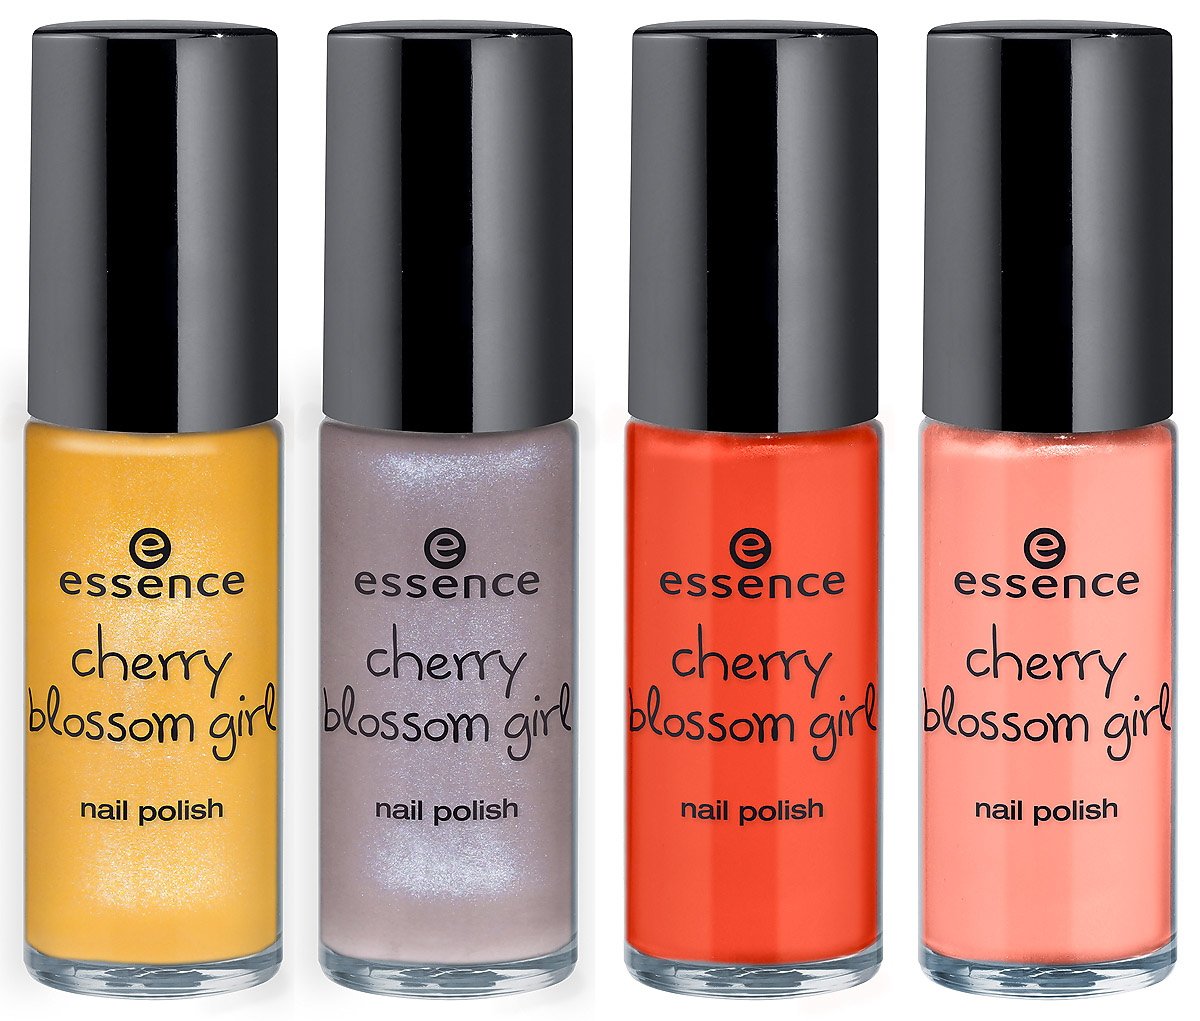 essence cherry blossom girl – nail polish